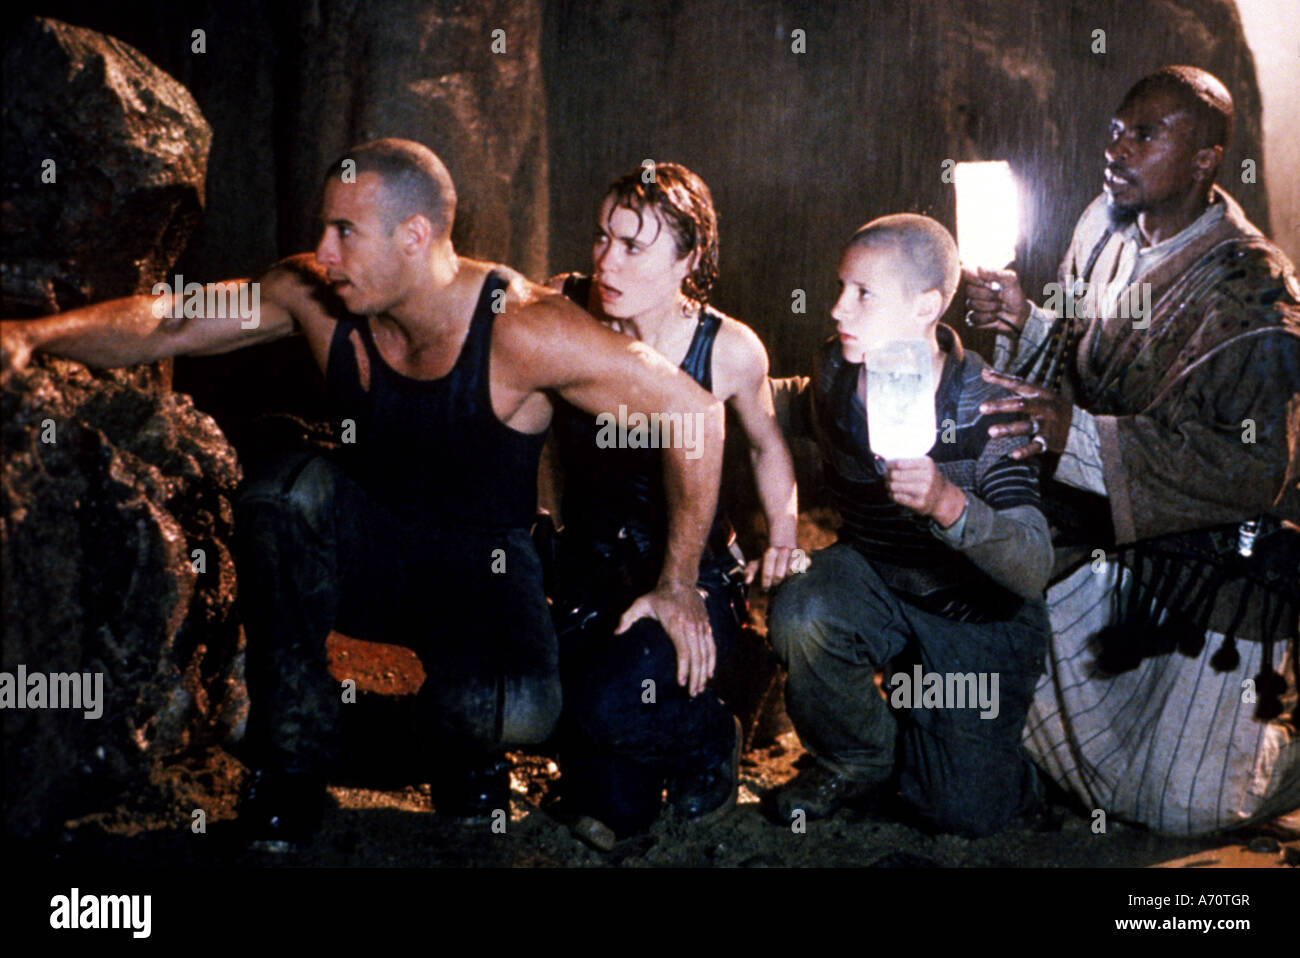 PITCH BLACK 2000 UIP/Gramercy film with Vin Diesel at left - Stock Image